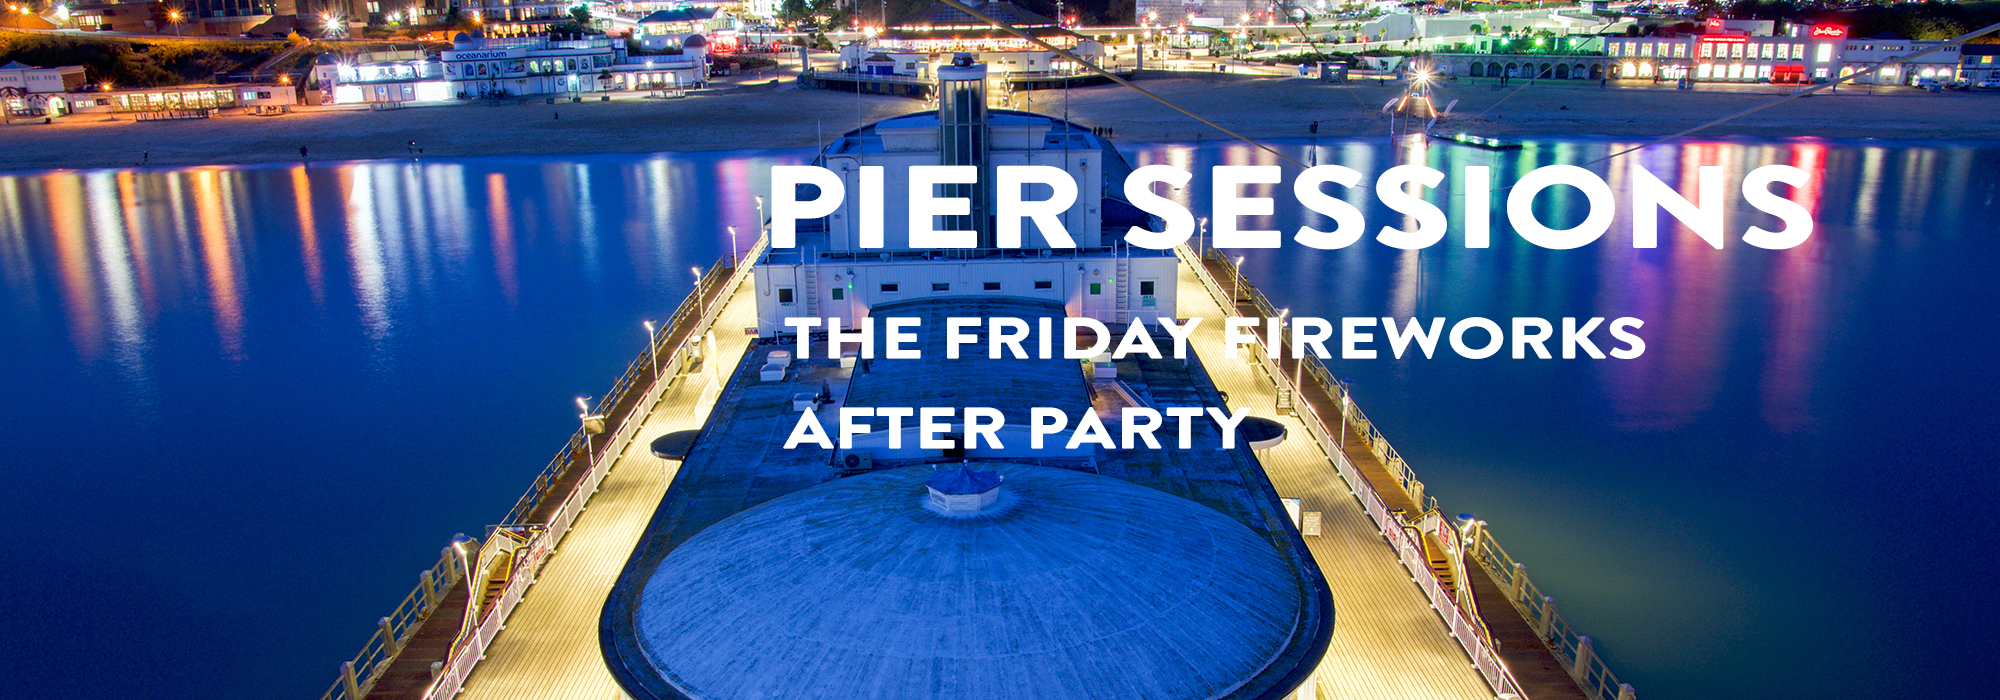 Pier sessions